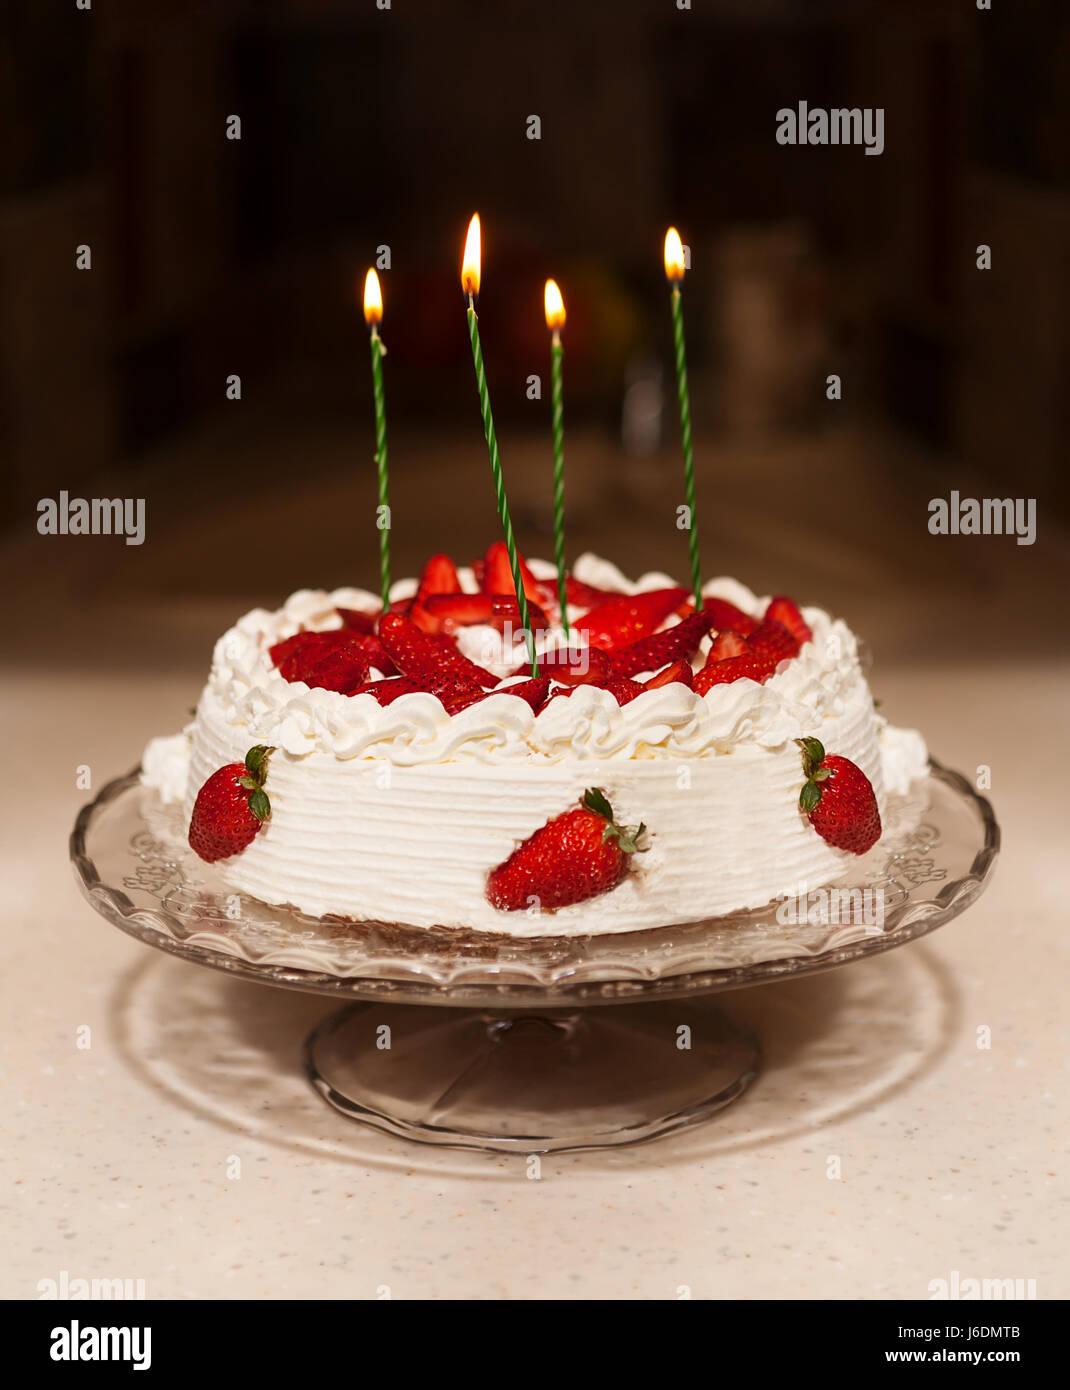 Birthday Cake With Candles Bright Lights Bokeh On Table